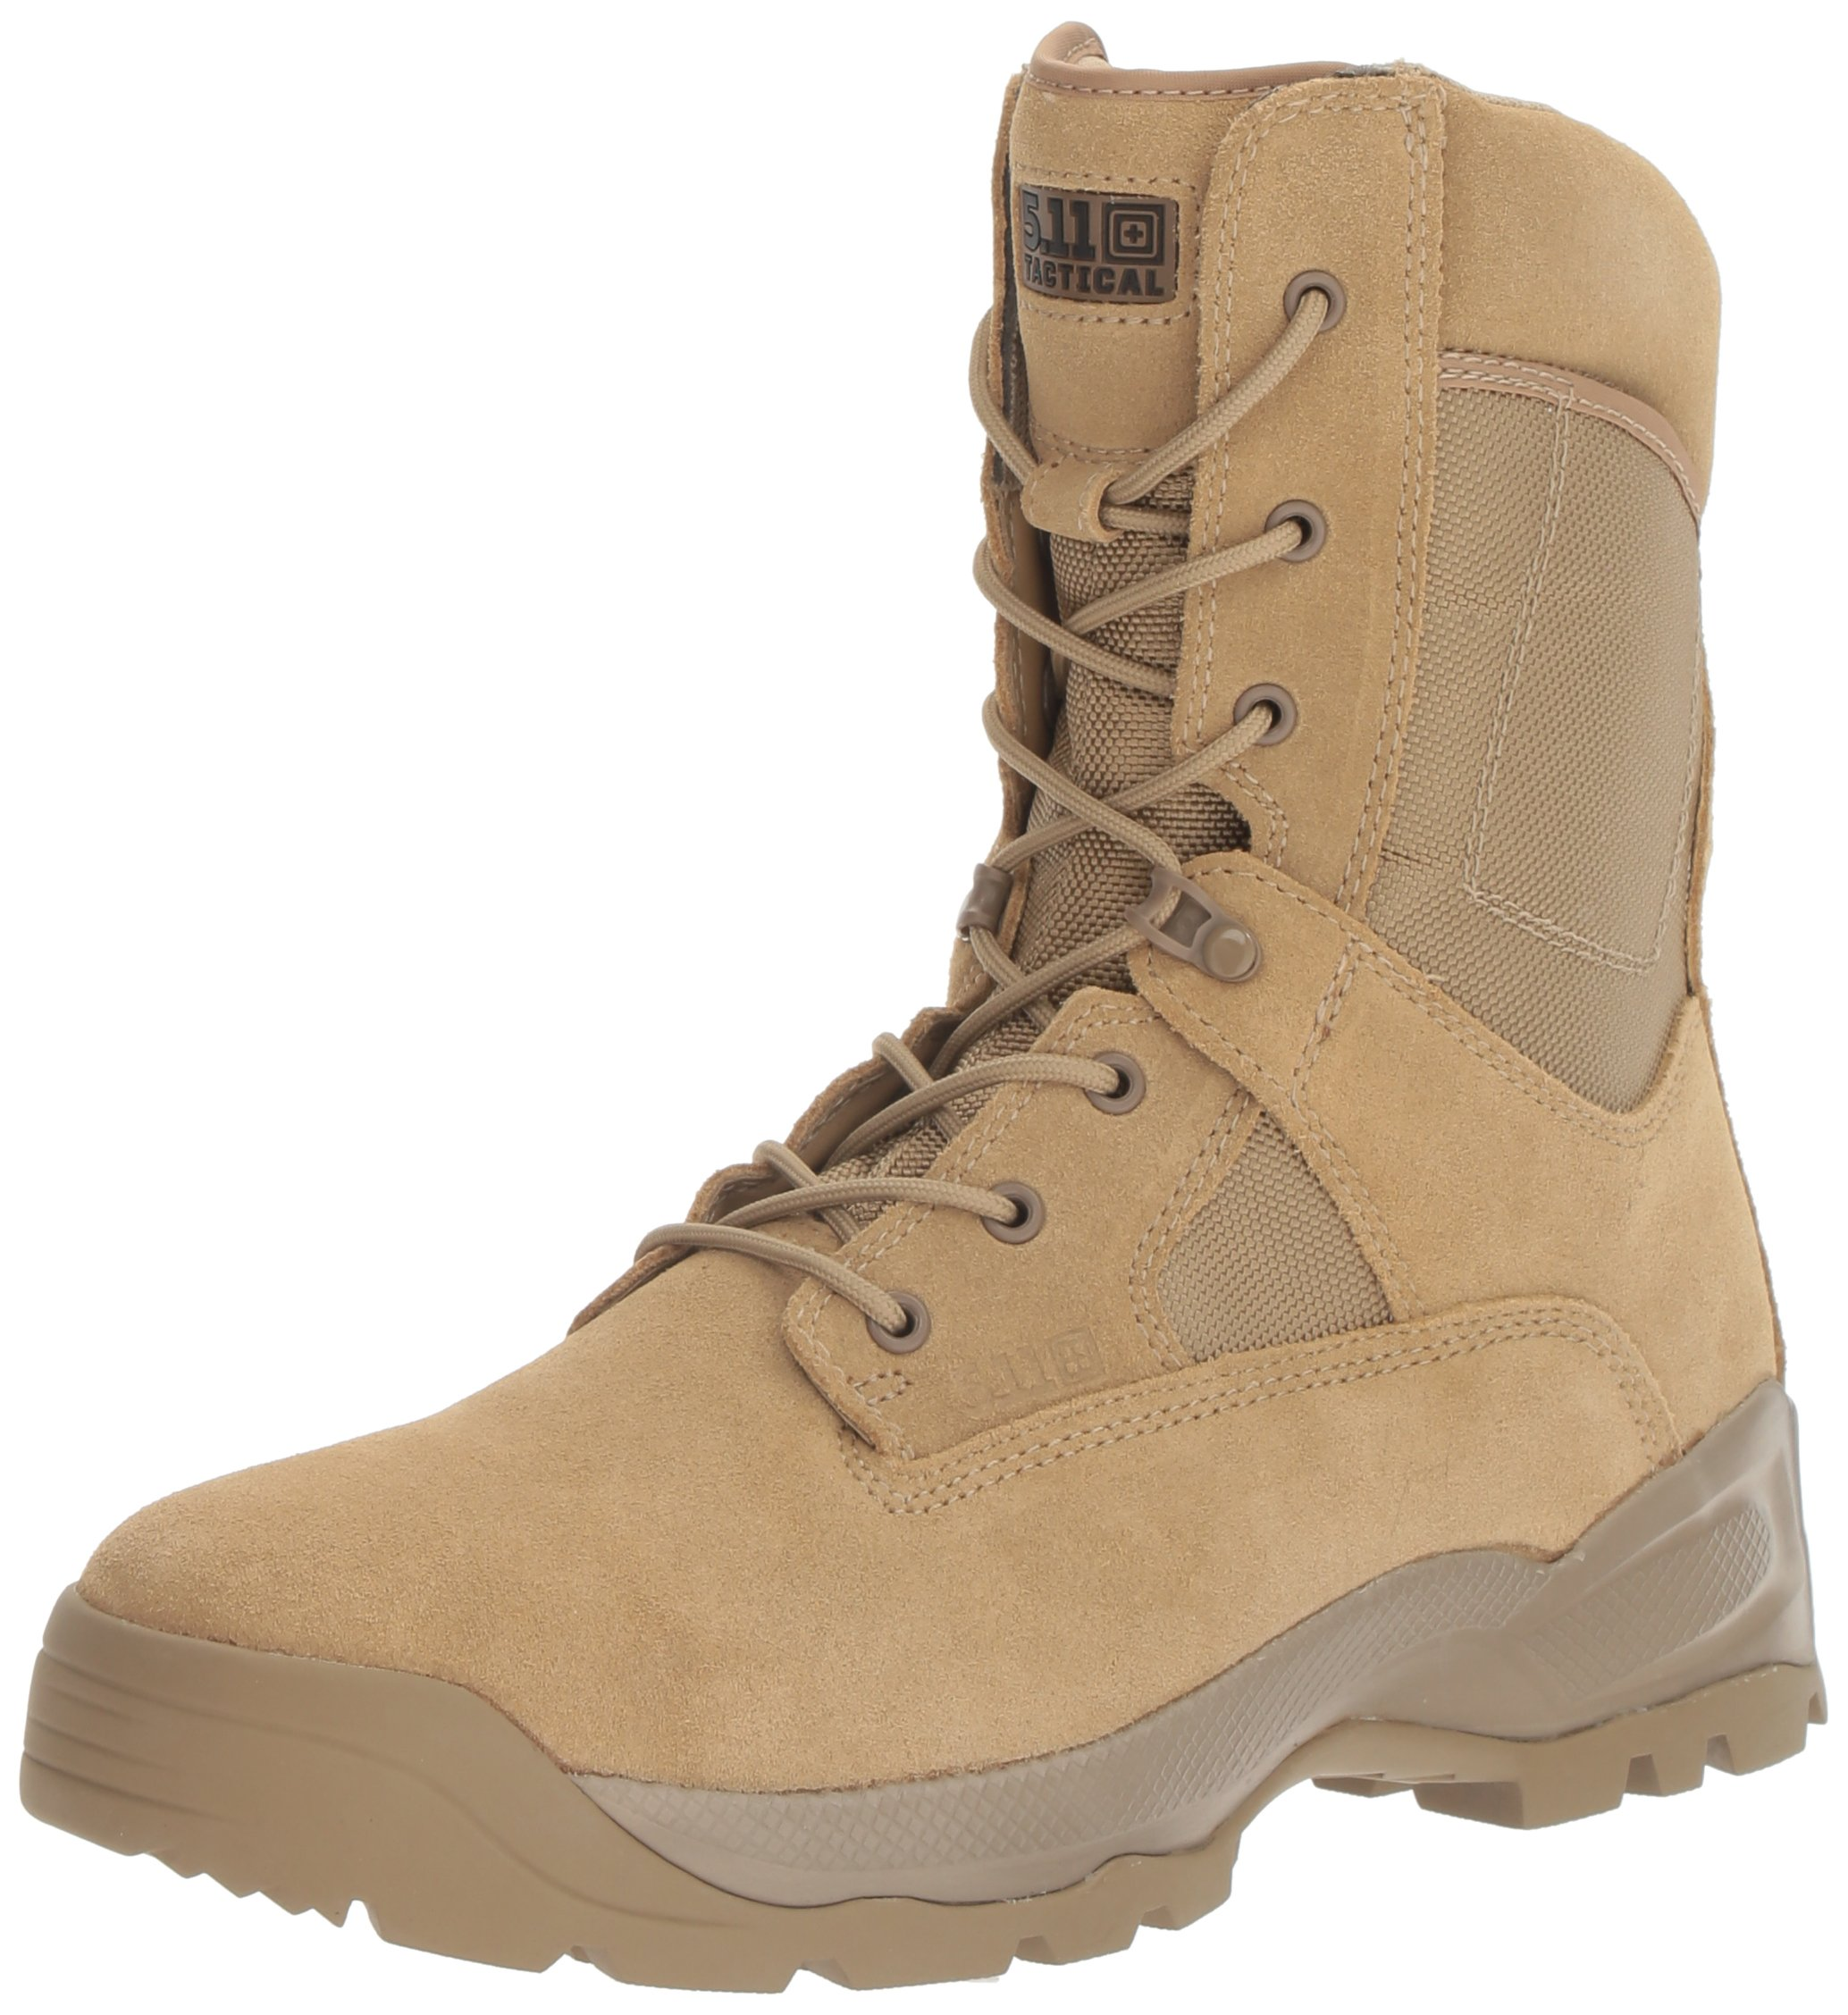 5.11 ATAC 8In Boot-U, Coyote Brown, 10.5 D(M) US